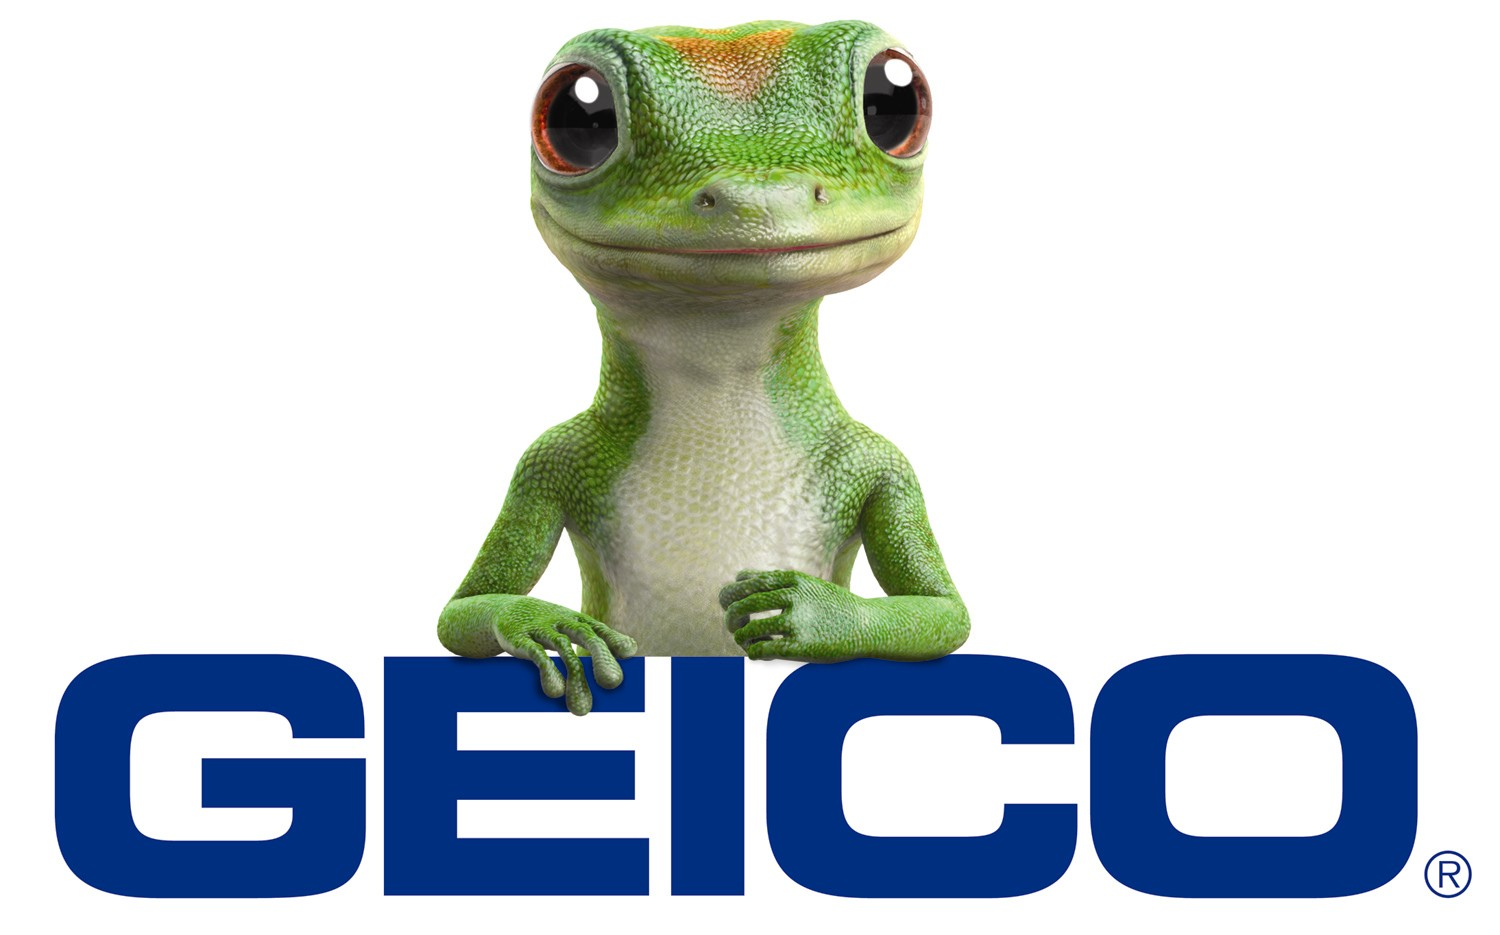 geico best car insurance company